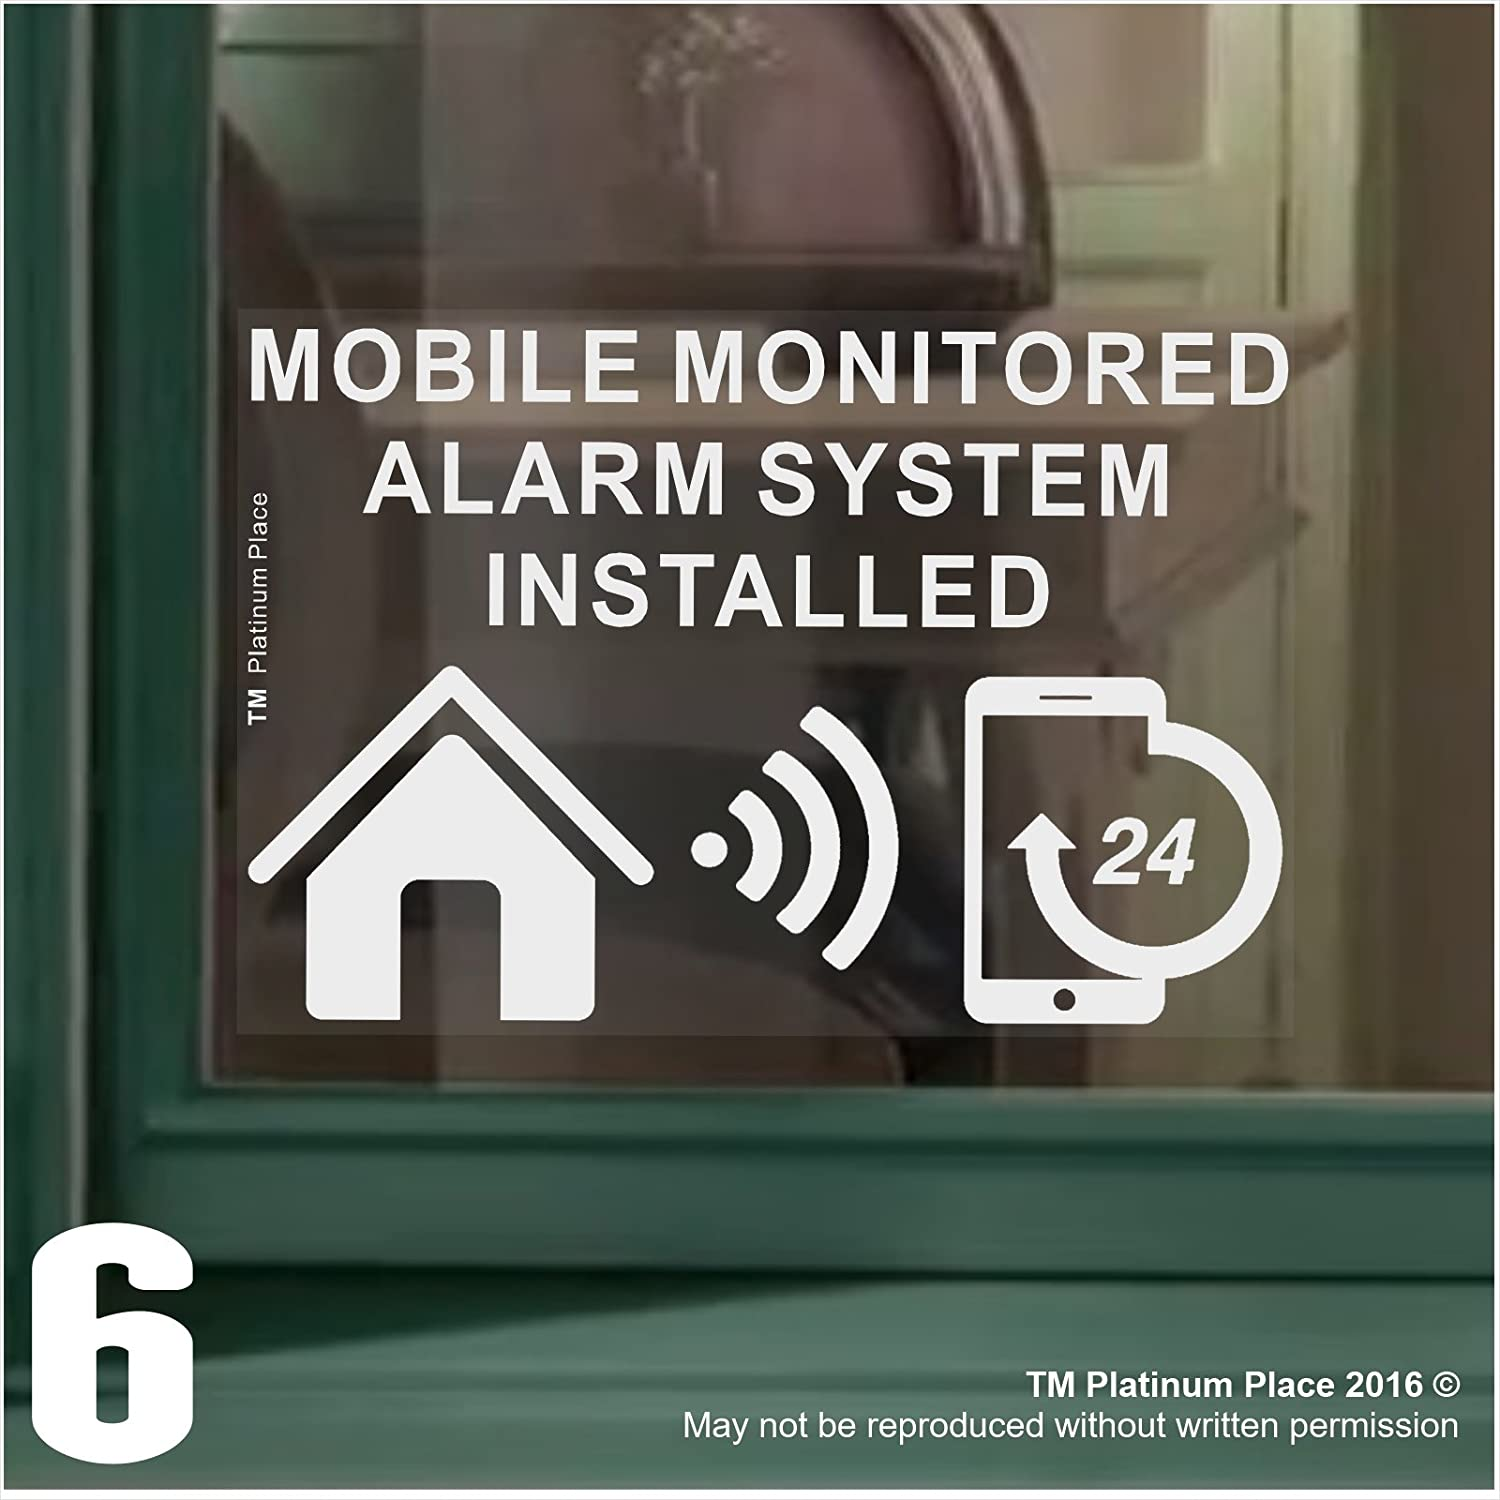 6 x MOBILE Monitored Alarm System Installed Stickers-130mm White on Clear Internal Window Appllication-24hr Security Warning Signs for Home, House, Flat, Business, Property-Self Adhesive Vinyl by Platinum Place